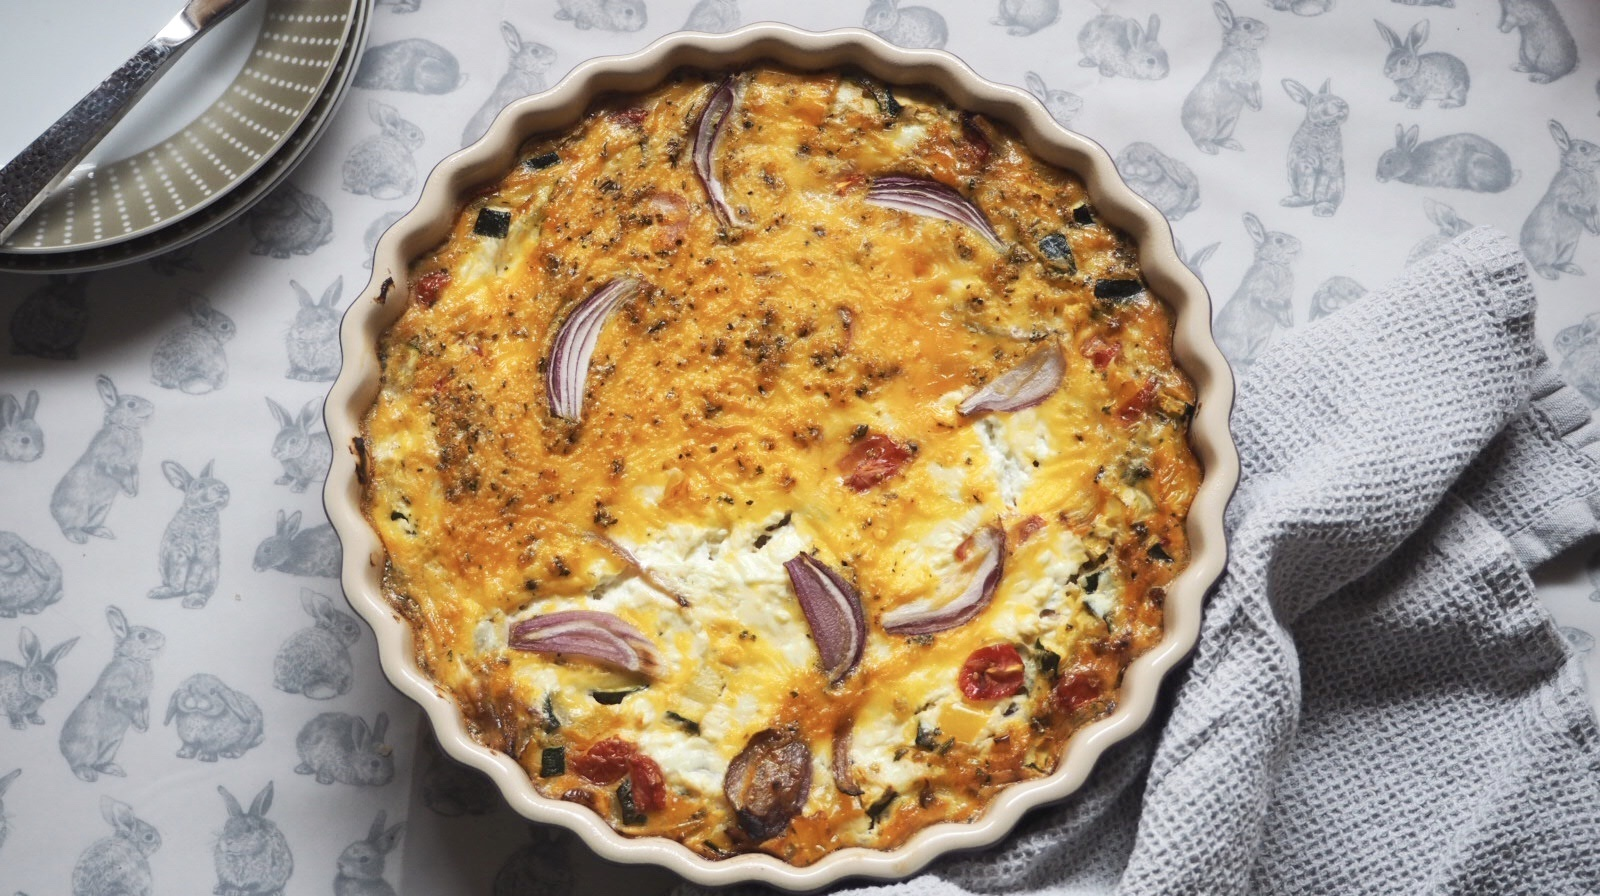 Slimming World Picnic Ideas | Summer Vegetable Crustless Quiche